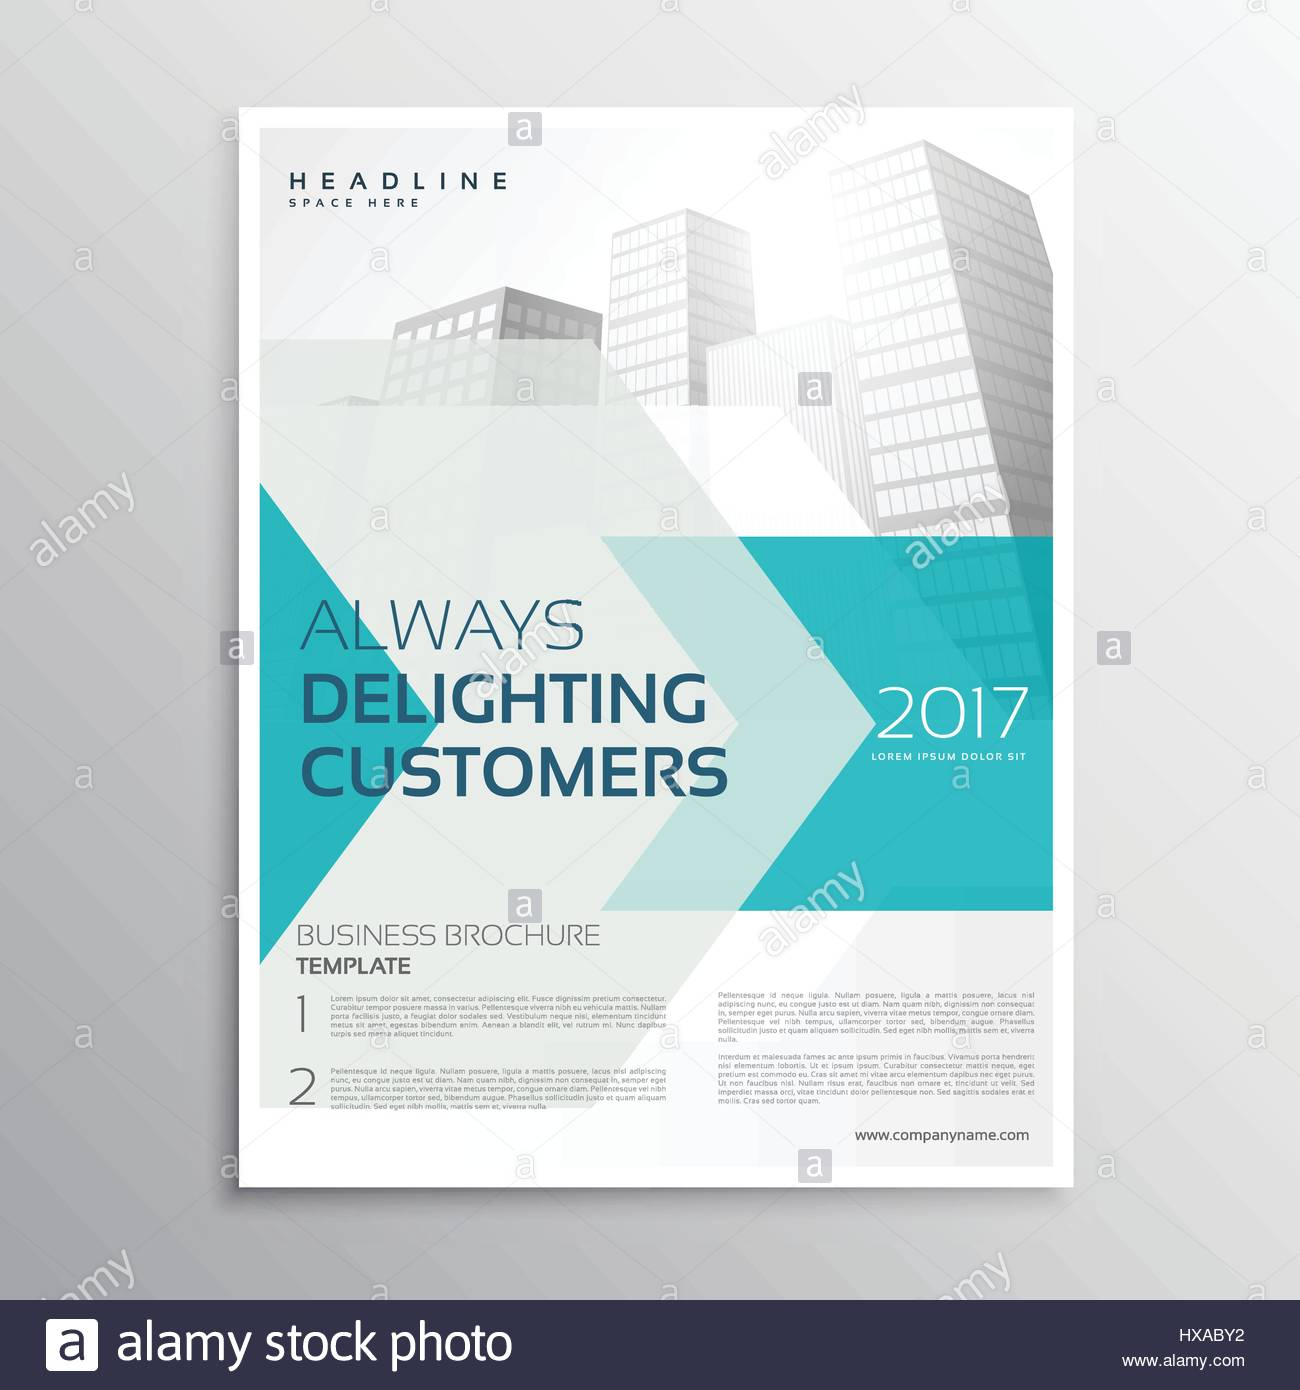 Business brochure leaflet template with arrow and geometric shape business brochure leaflet template with arrow and geometric shape and buildings cheaphphosting Image collections